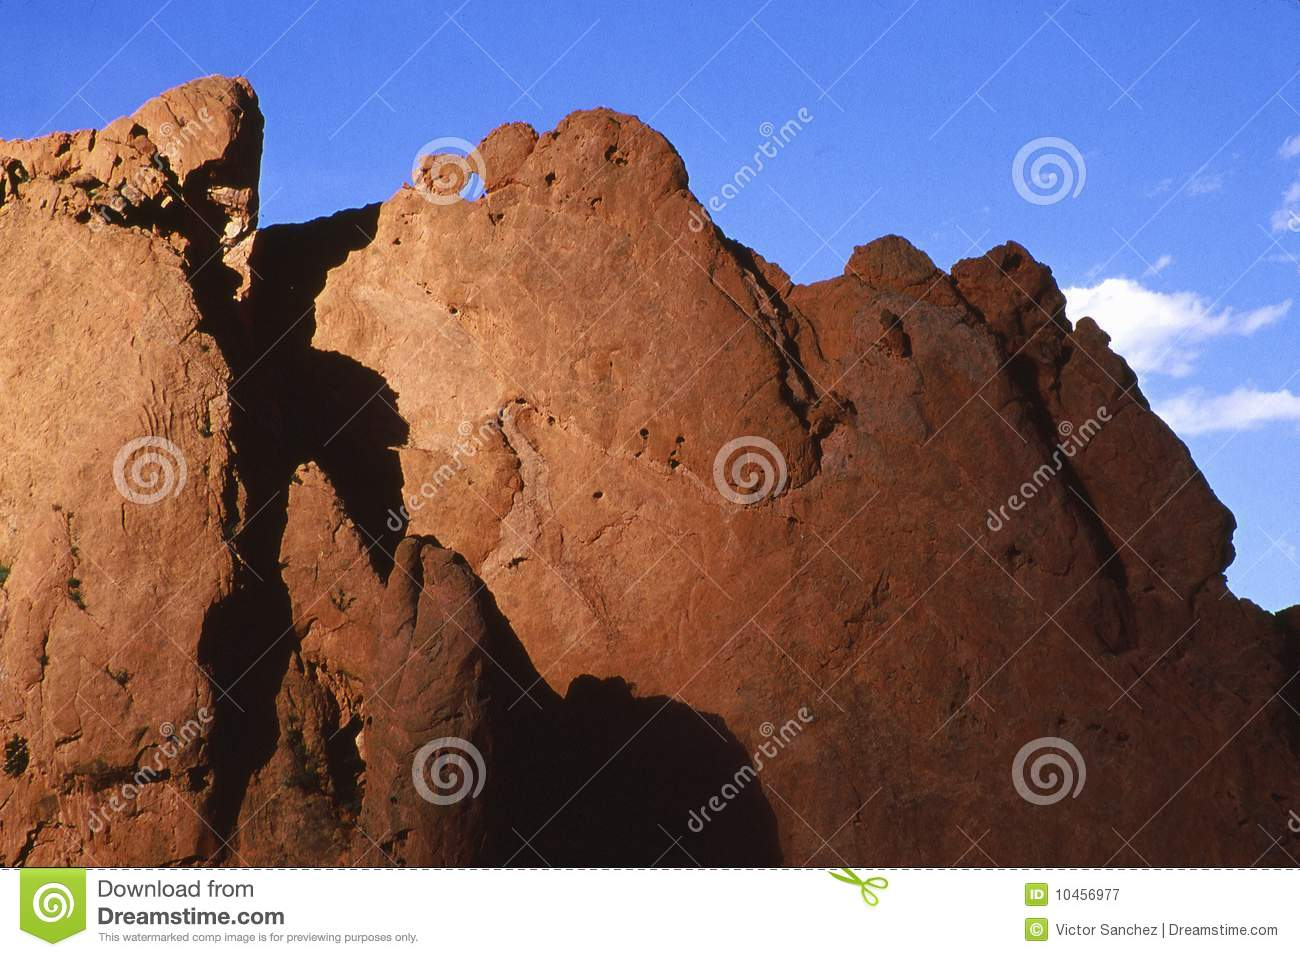 Garden Of The Gods Kissing Camels Royalty Free Stock Photography Image 10456977